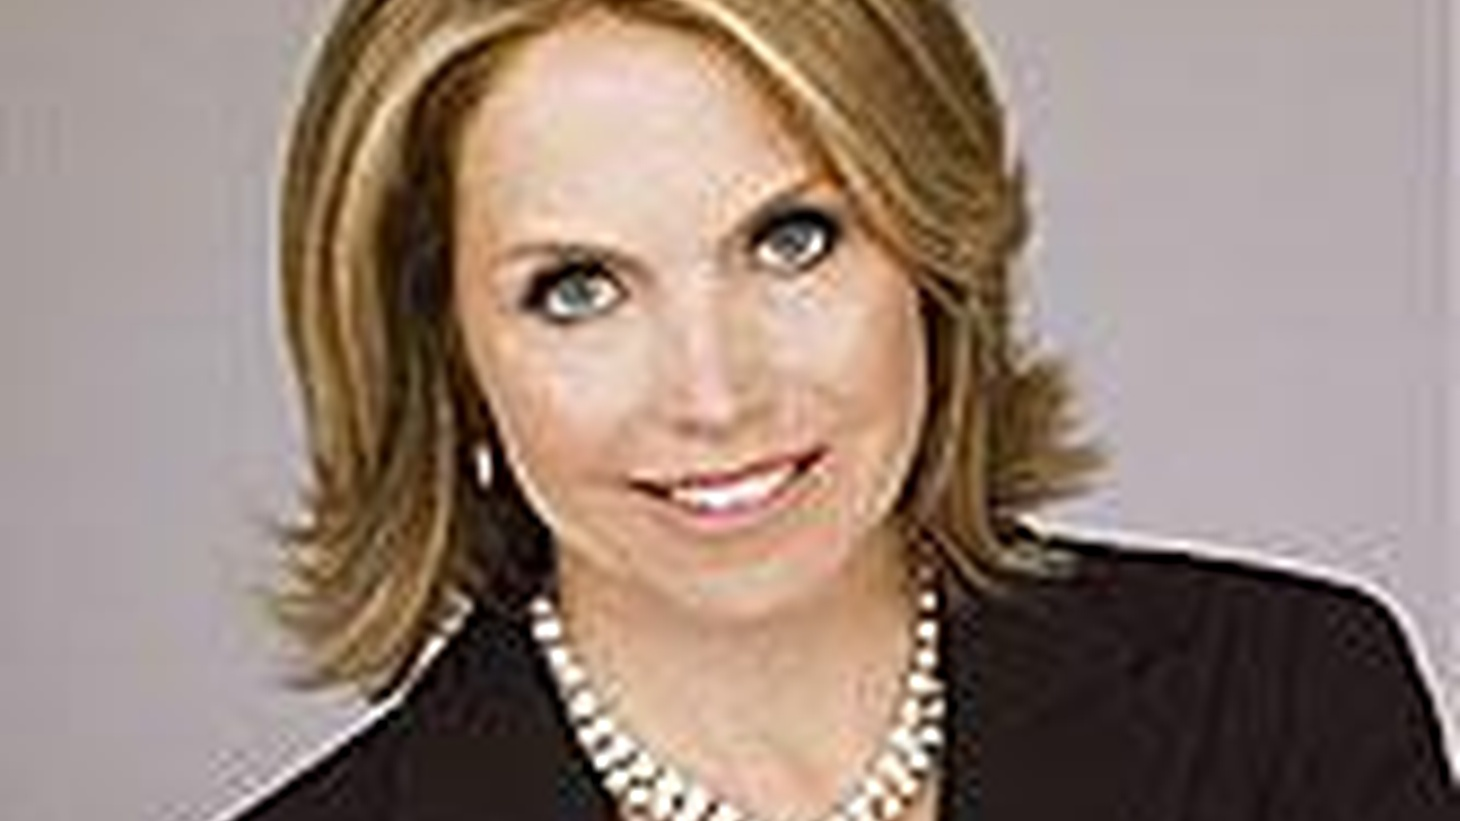 Katie Couric is not going crazy. At least not yet. In the 11 months since she became the first woman to anchor a major network news show, nothing seems to have gone right...